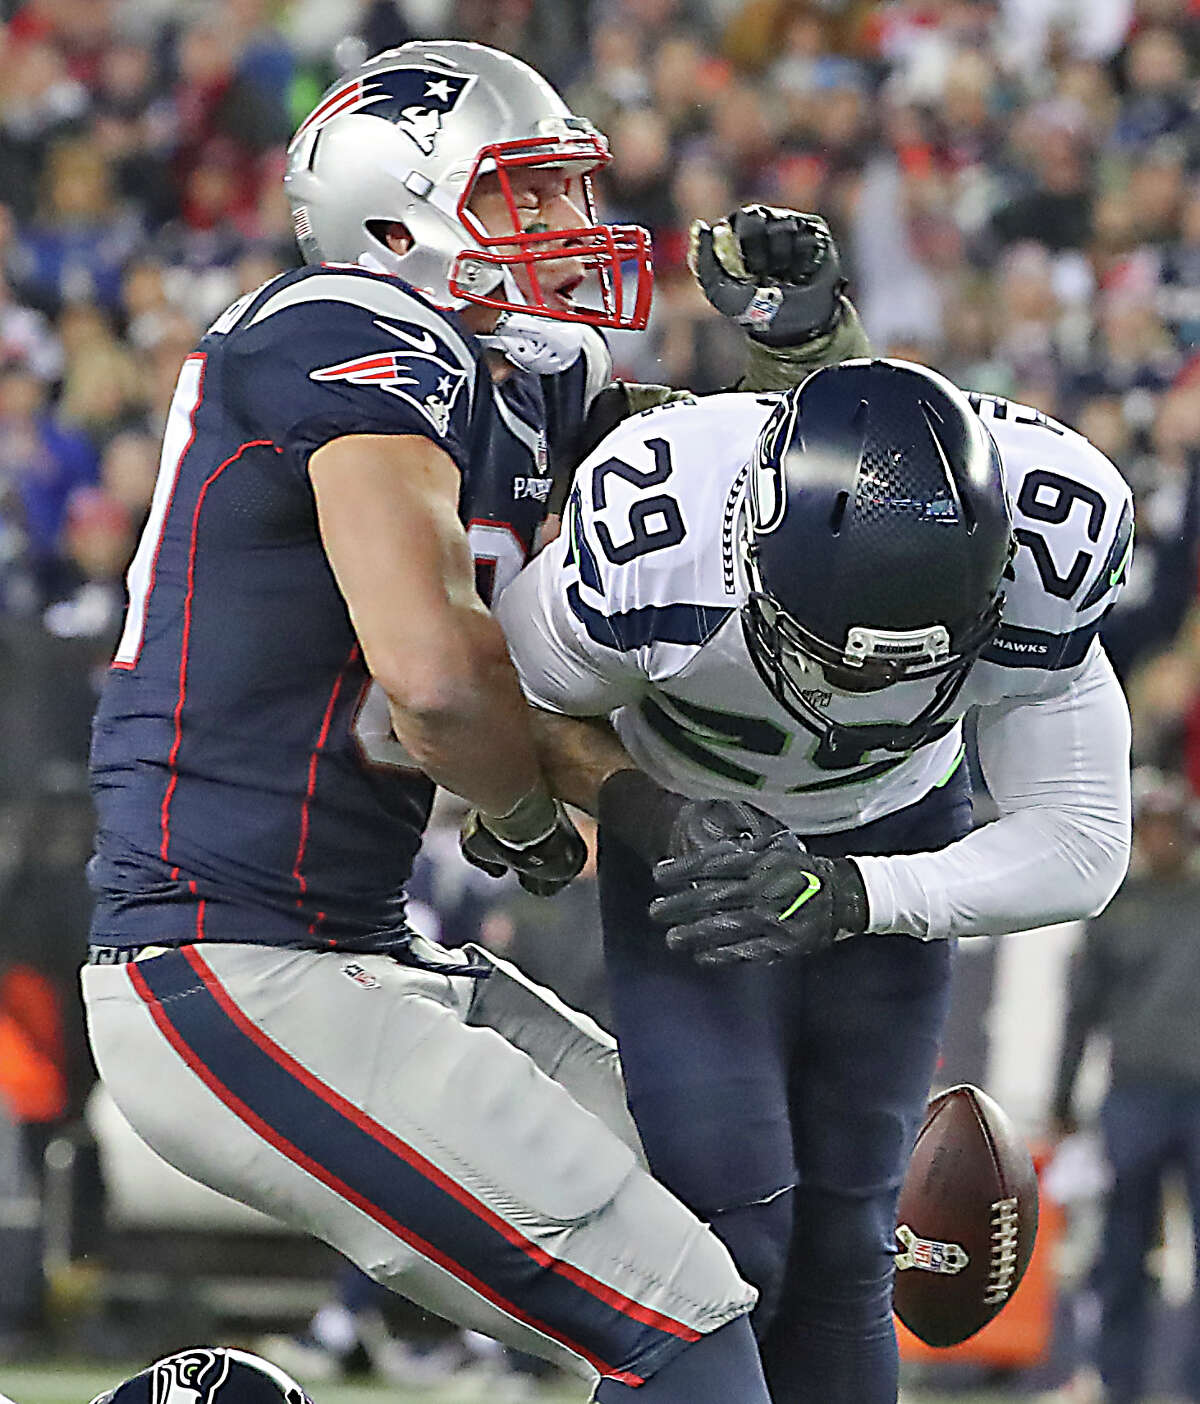 New England Patriots Rob Gronkowski is hit by Seattle Seahawks Earl Thomas III forcing an incomplete pass during second quarter. The New England Patriots host the Seattle Seahawks at Gillette Stadium in Foxborough, Mass., on Nov. 13, 2016. (Photo by Matthew J. Lee/The Boston Globe via Getty Images)